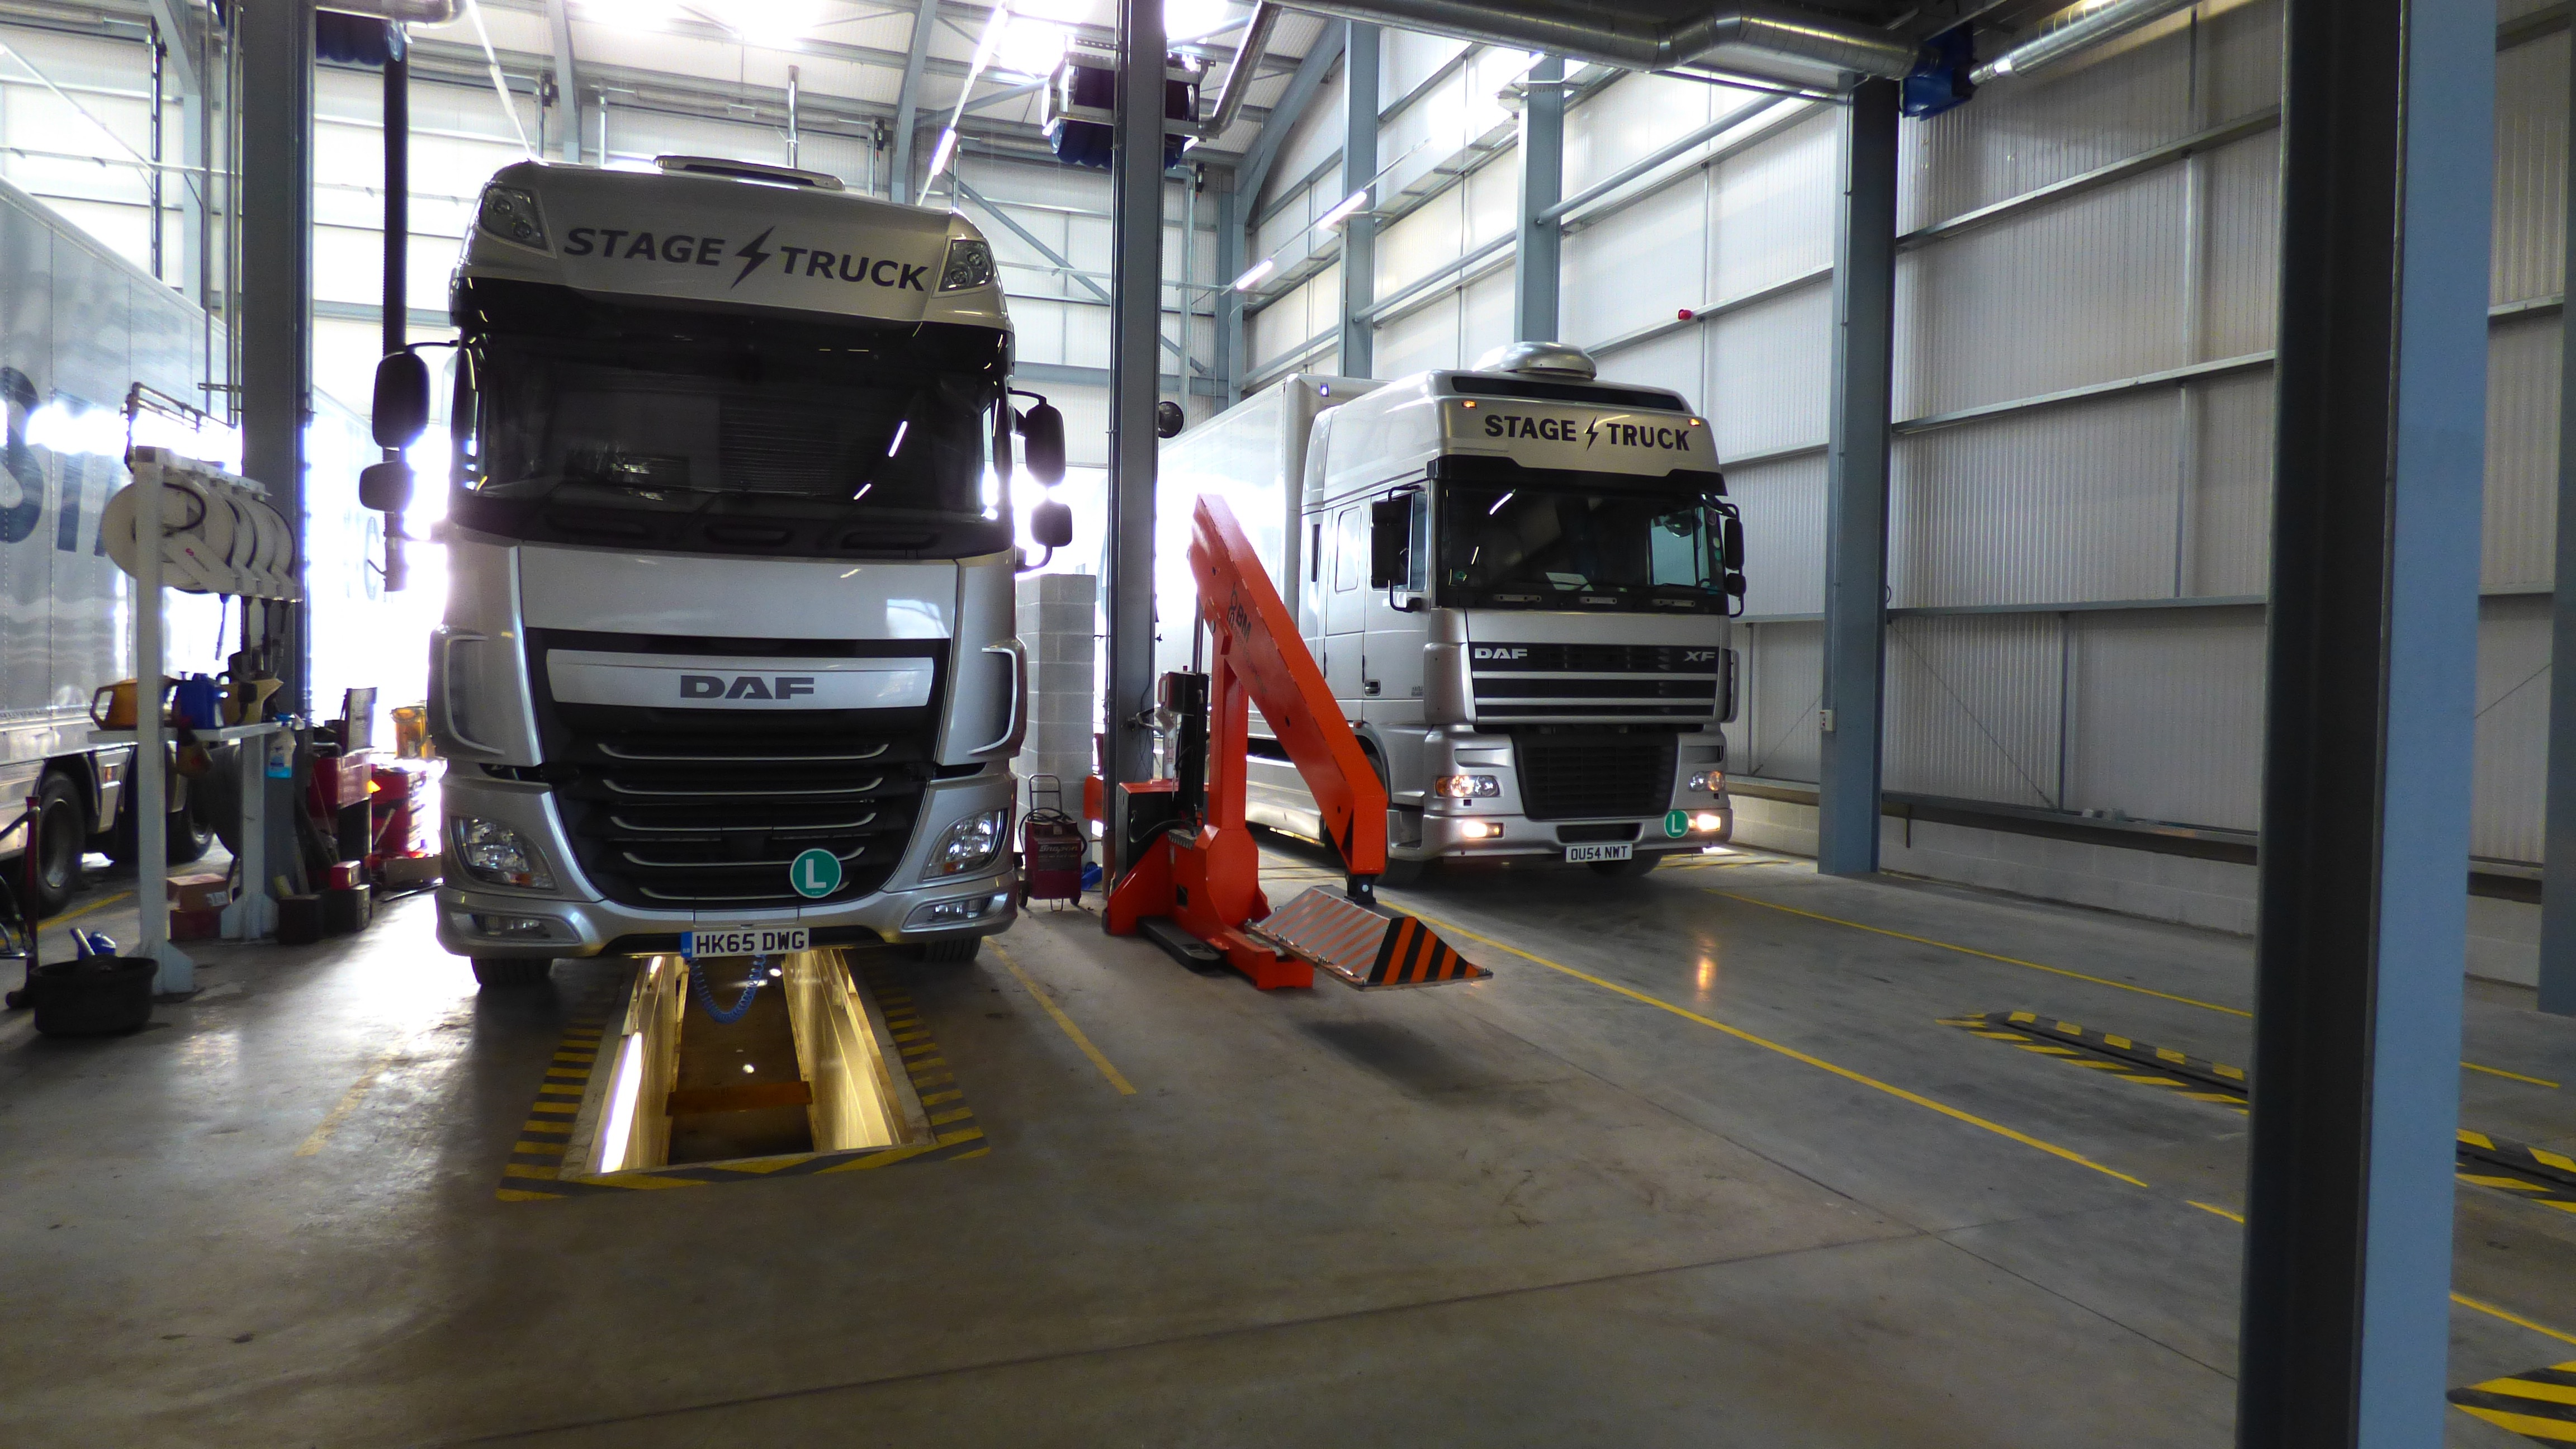 Stagetruck S Workshop With Full Atf Facilities Stagetruck